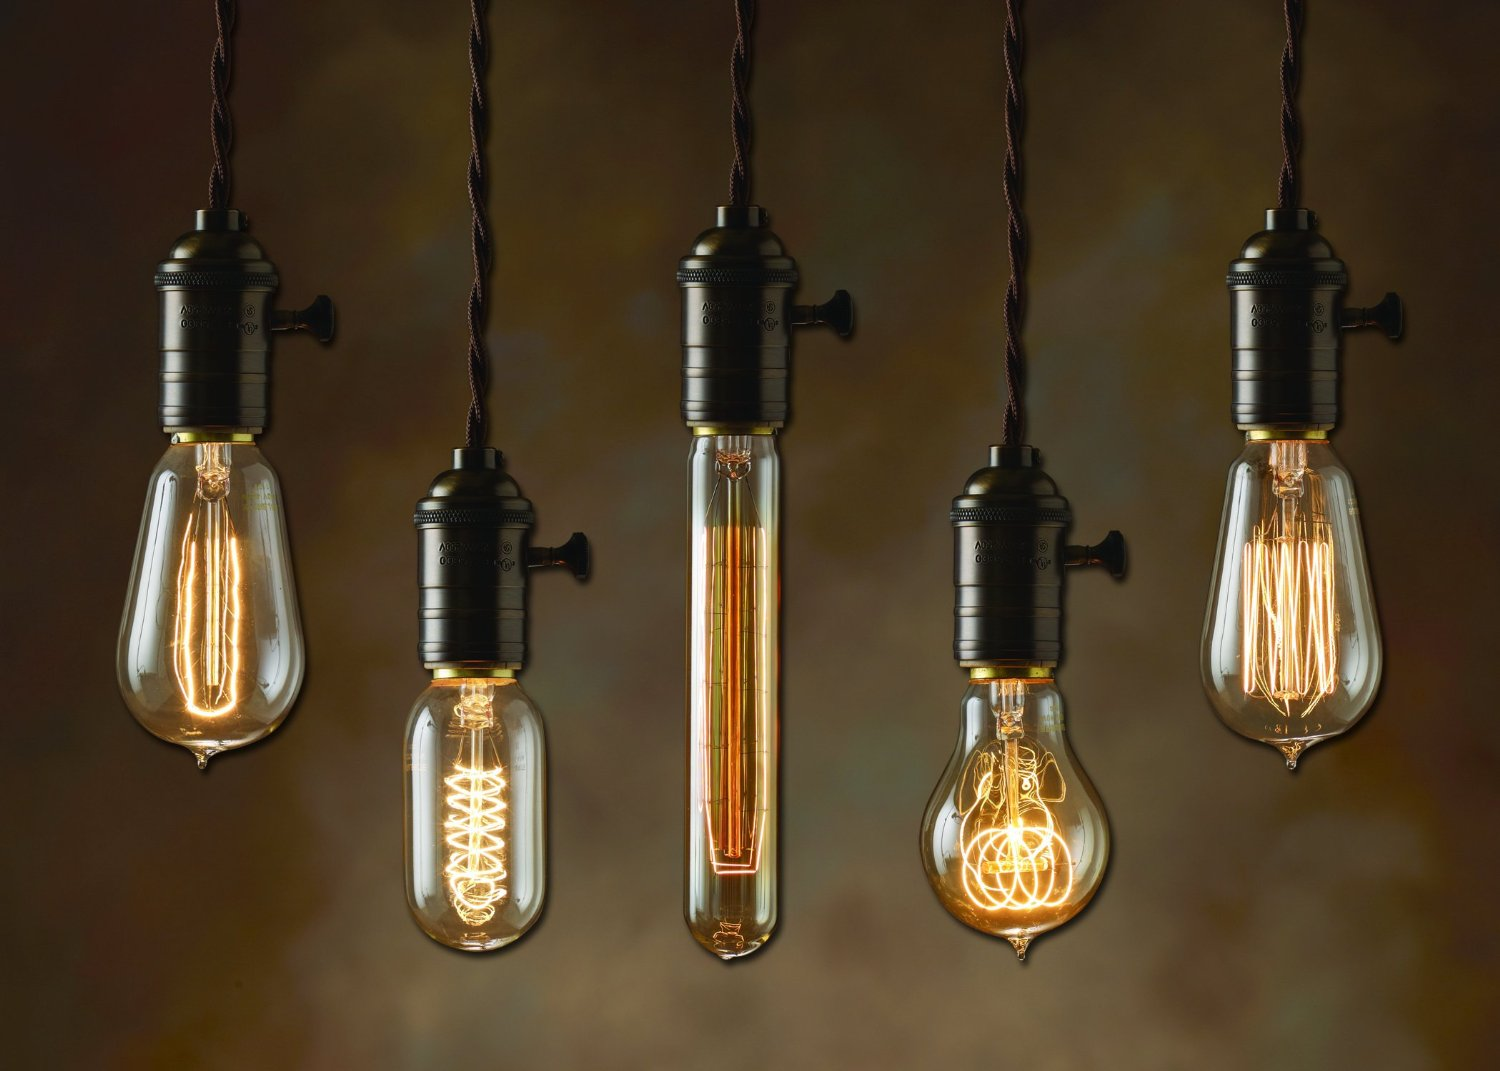 Vintage light bulbs stuff you should have for Suspension ampoules multiples